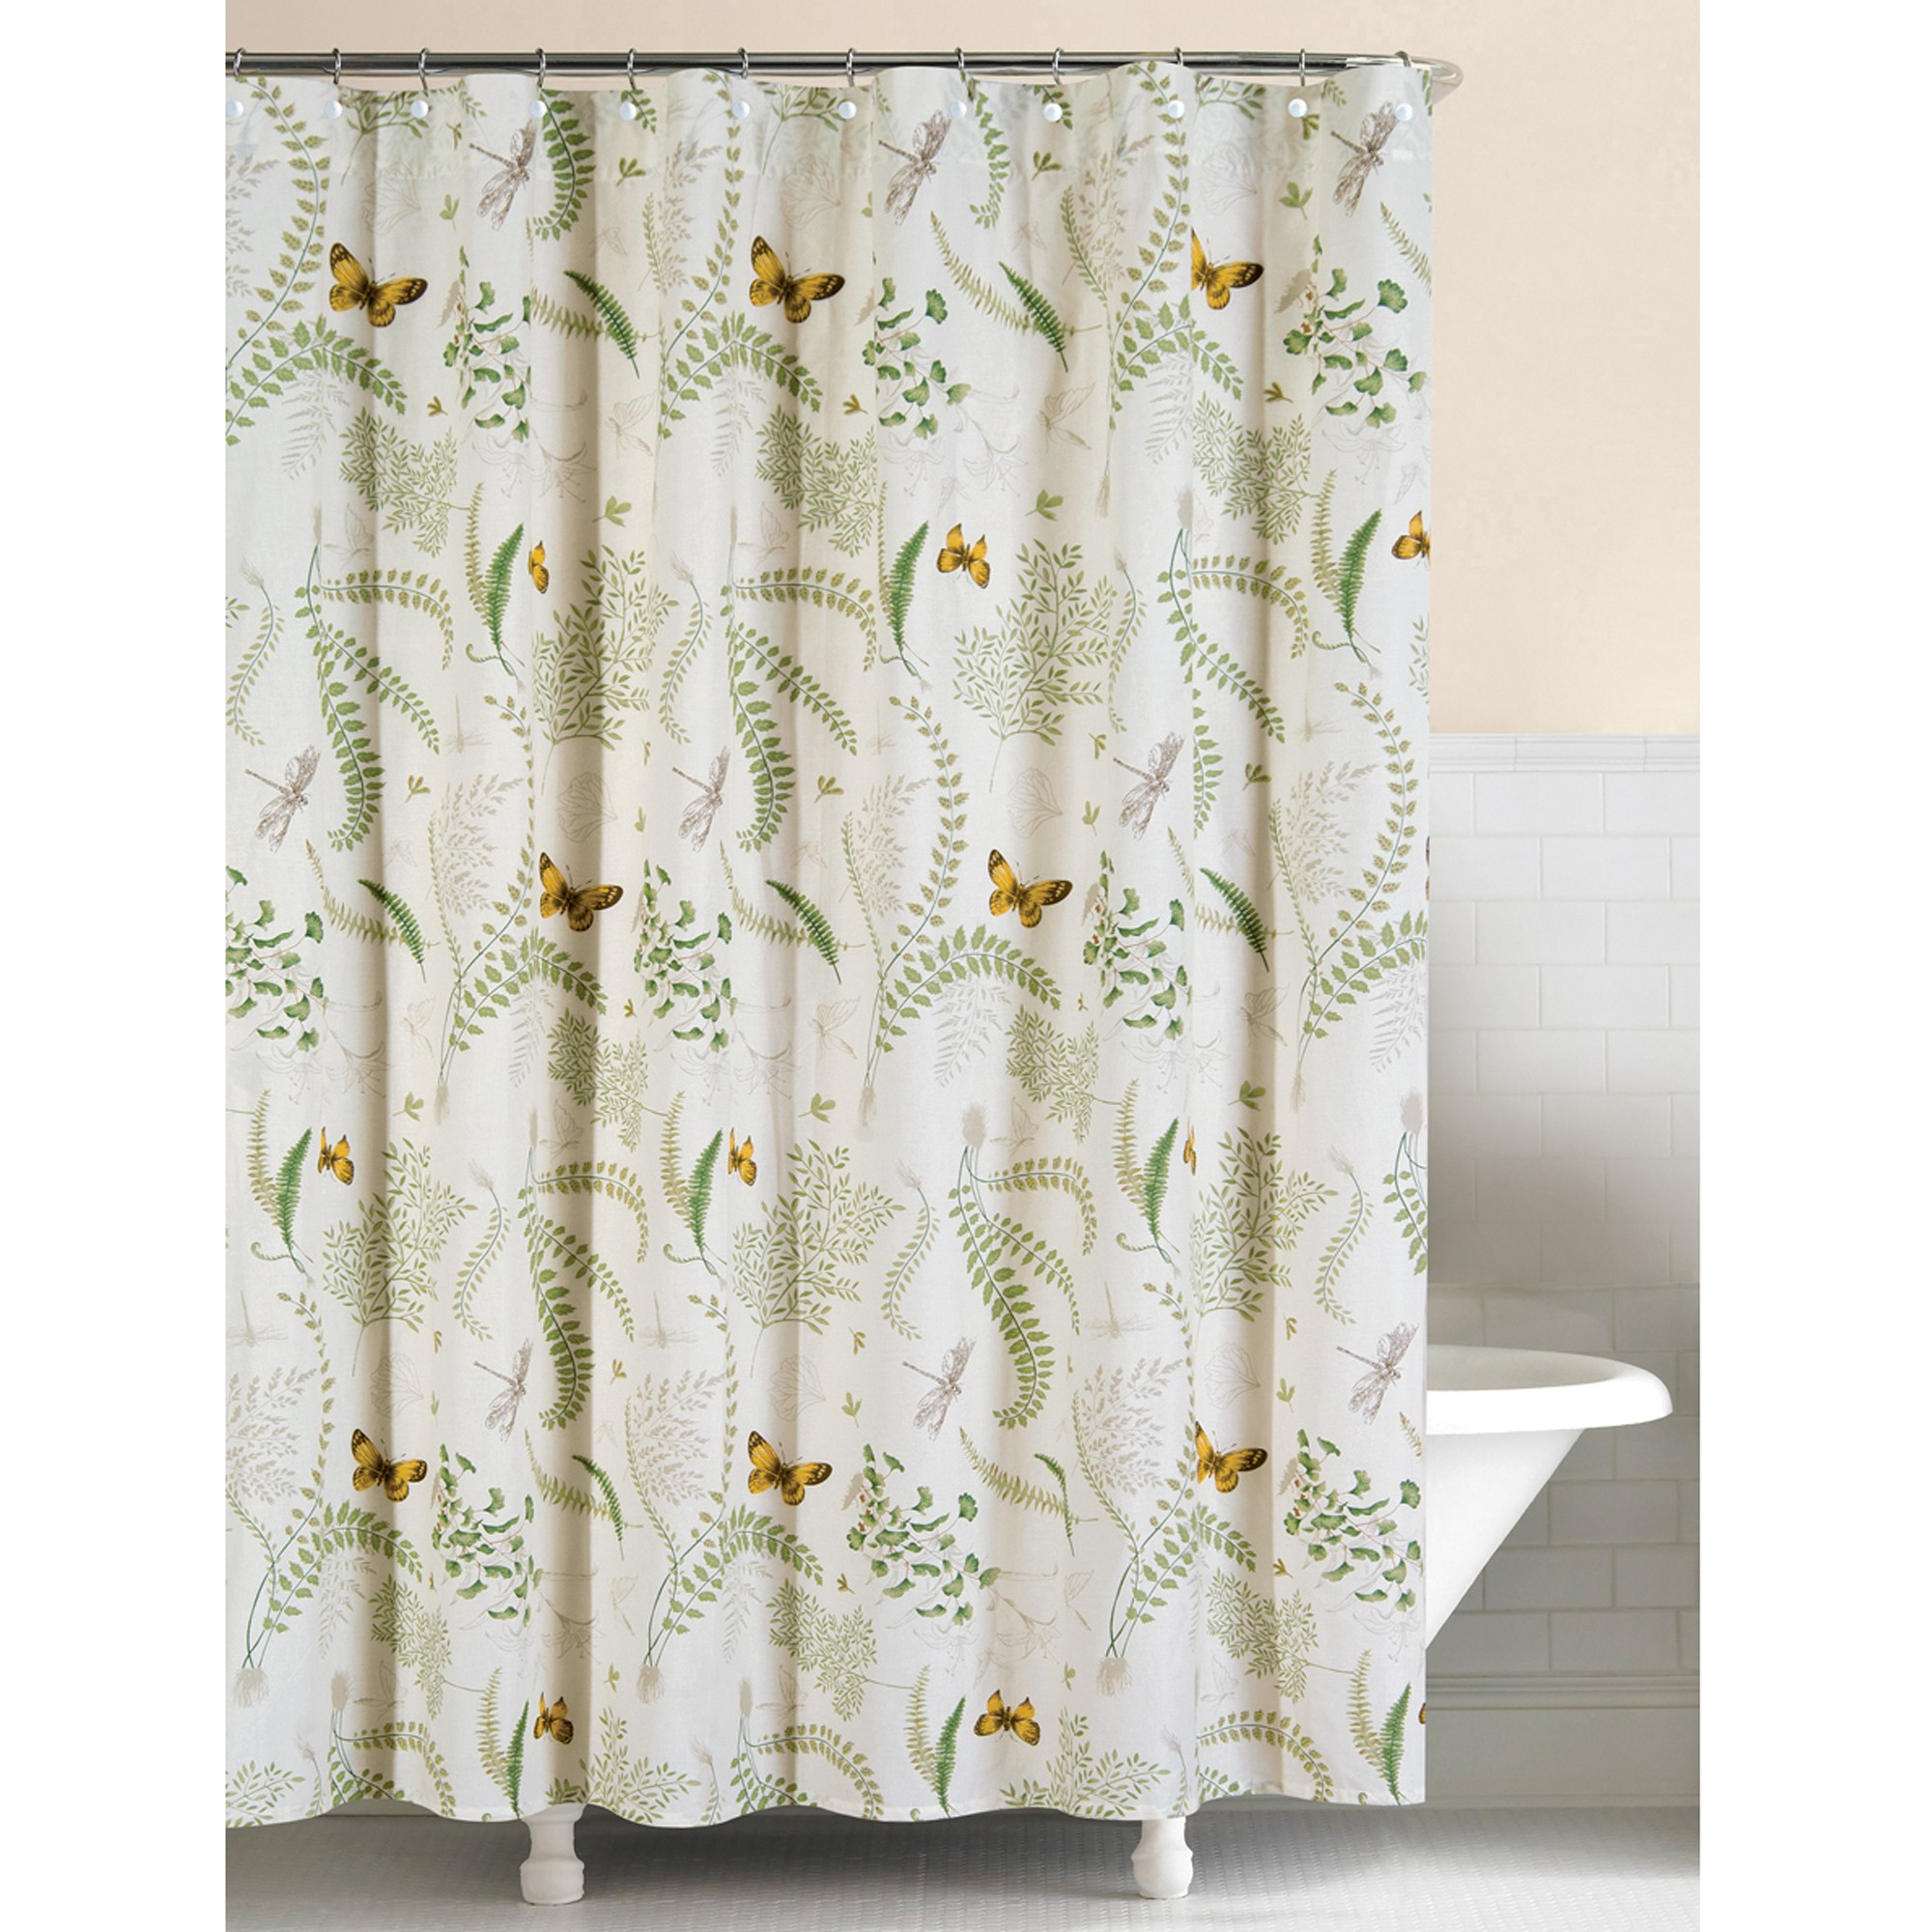 Fine Fern Shower Curtain Pictures Inspiration Bathtub For with regard to sizing 2000 X 2000